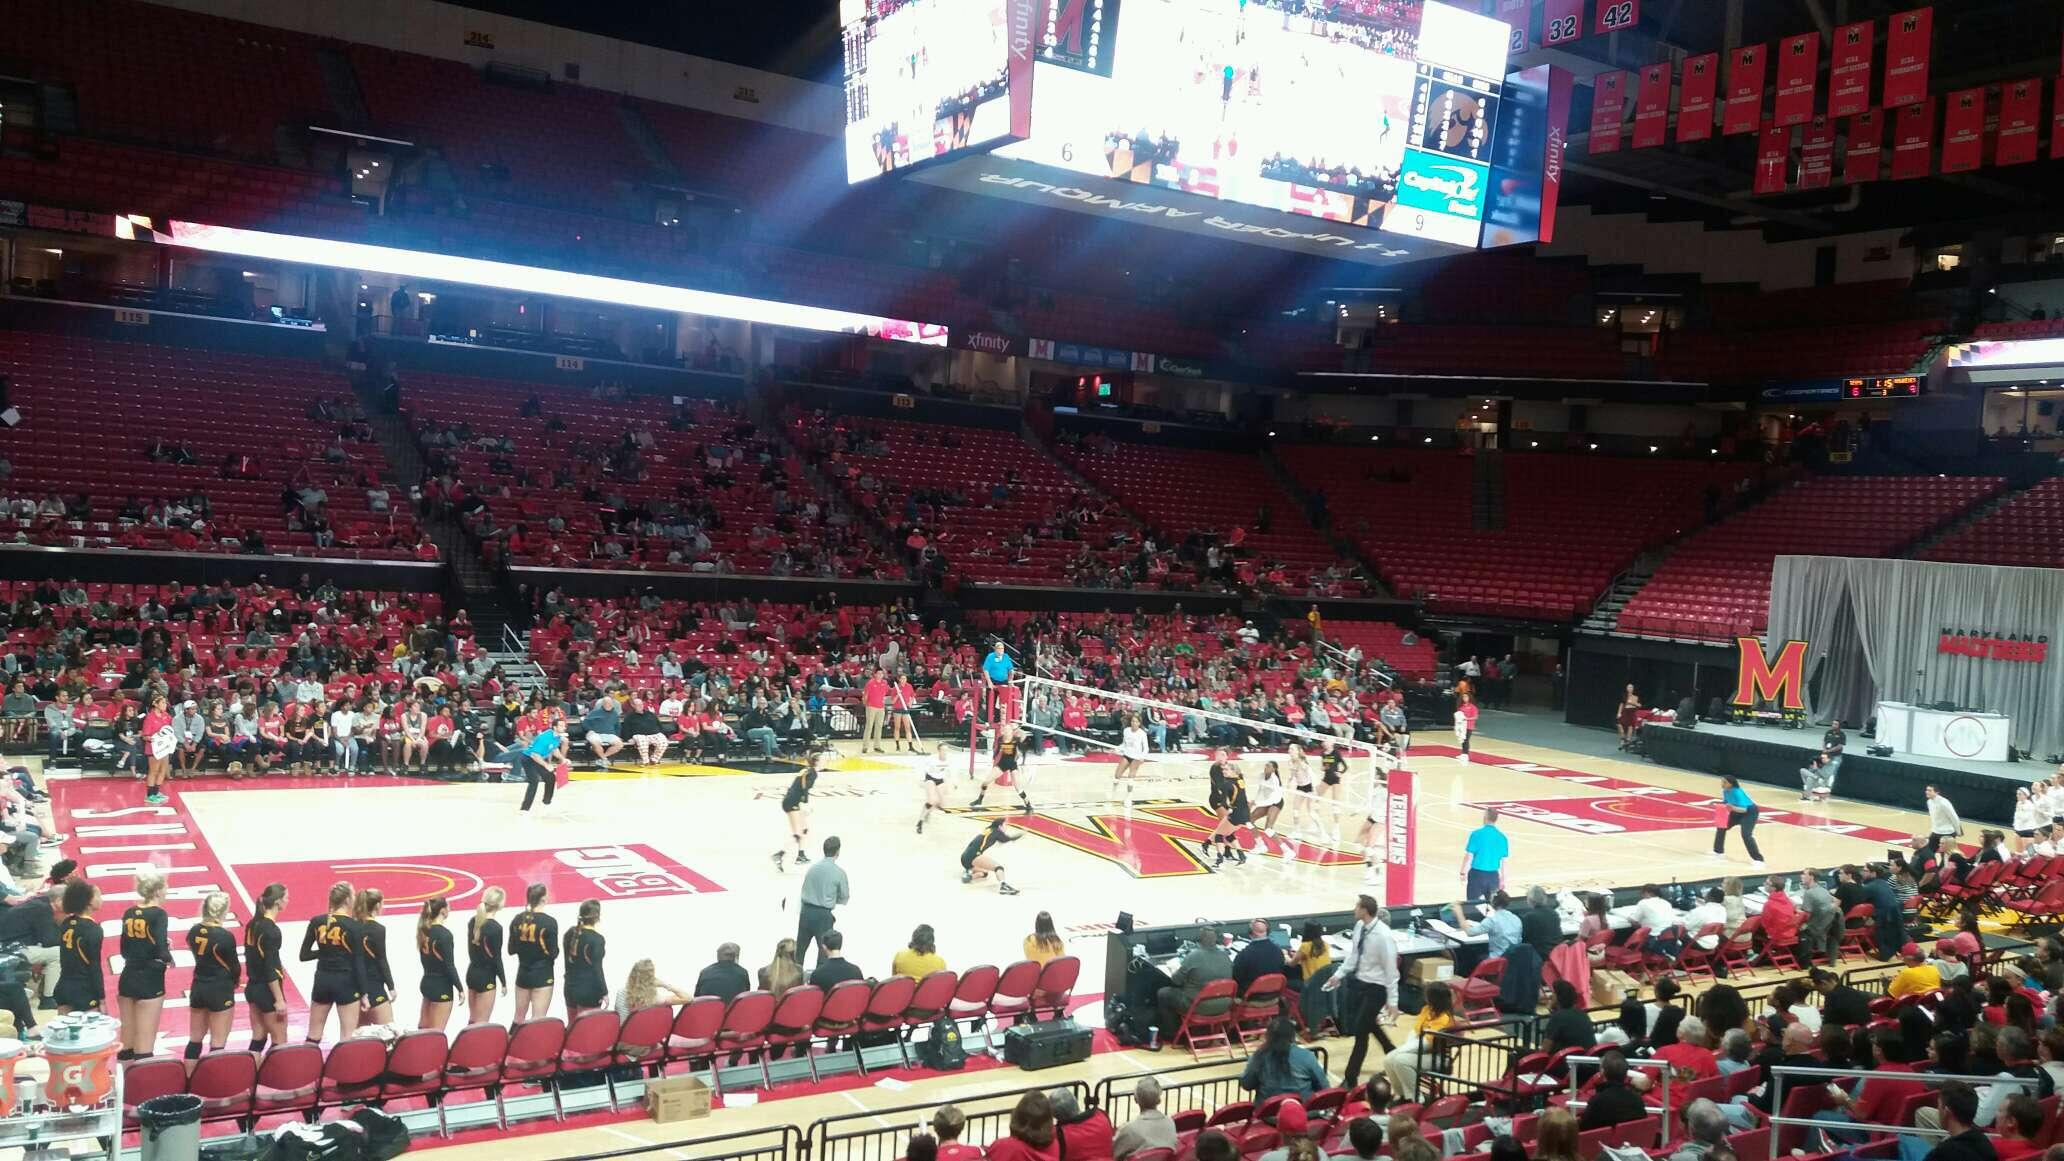 Xfinity Center (Maryland) Section 126 Row 3 Seat 17